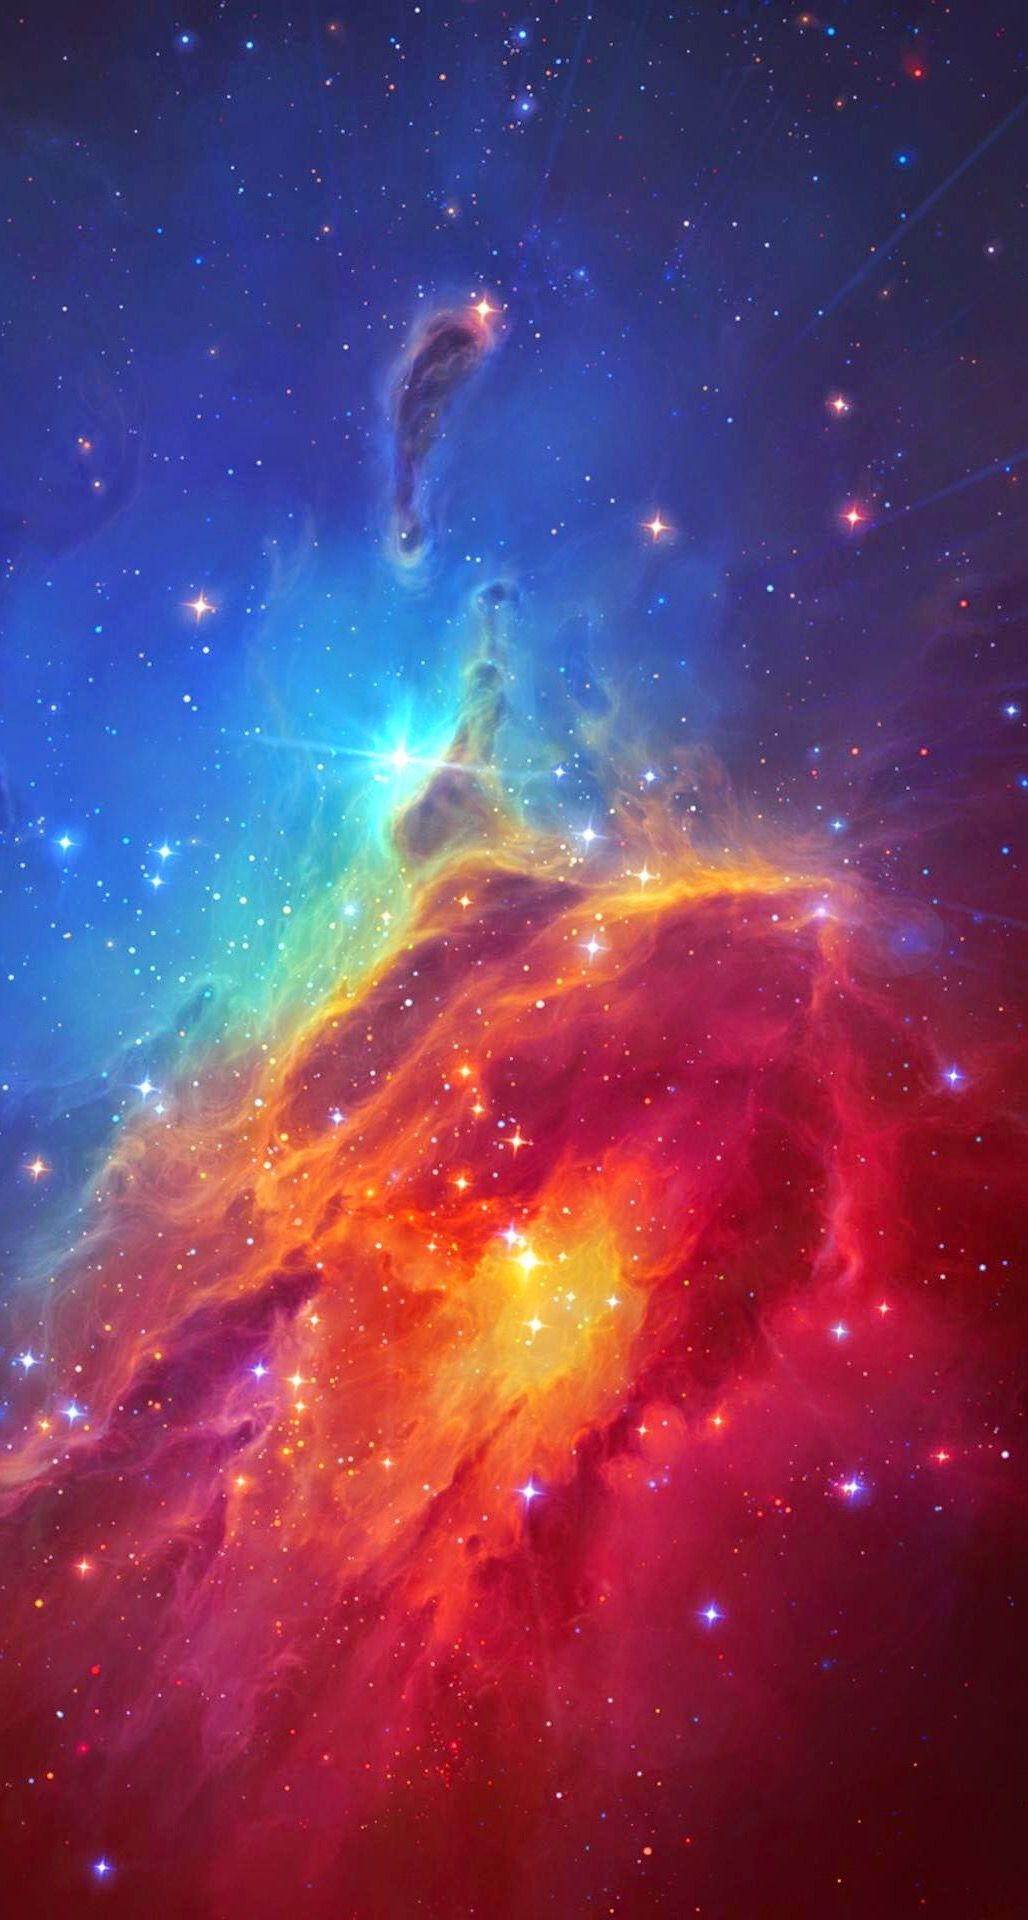 Stunning Colorful Space Nebula Iphone 6 Plus Hd Wallpaper Colorful Space Space Iphone Wallpaper Outer Space